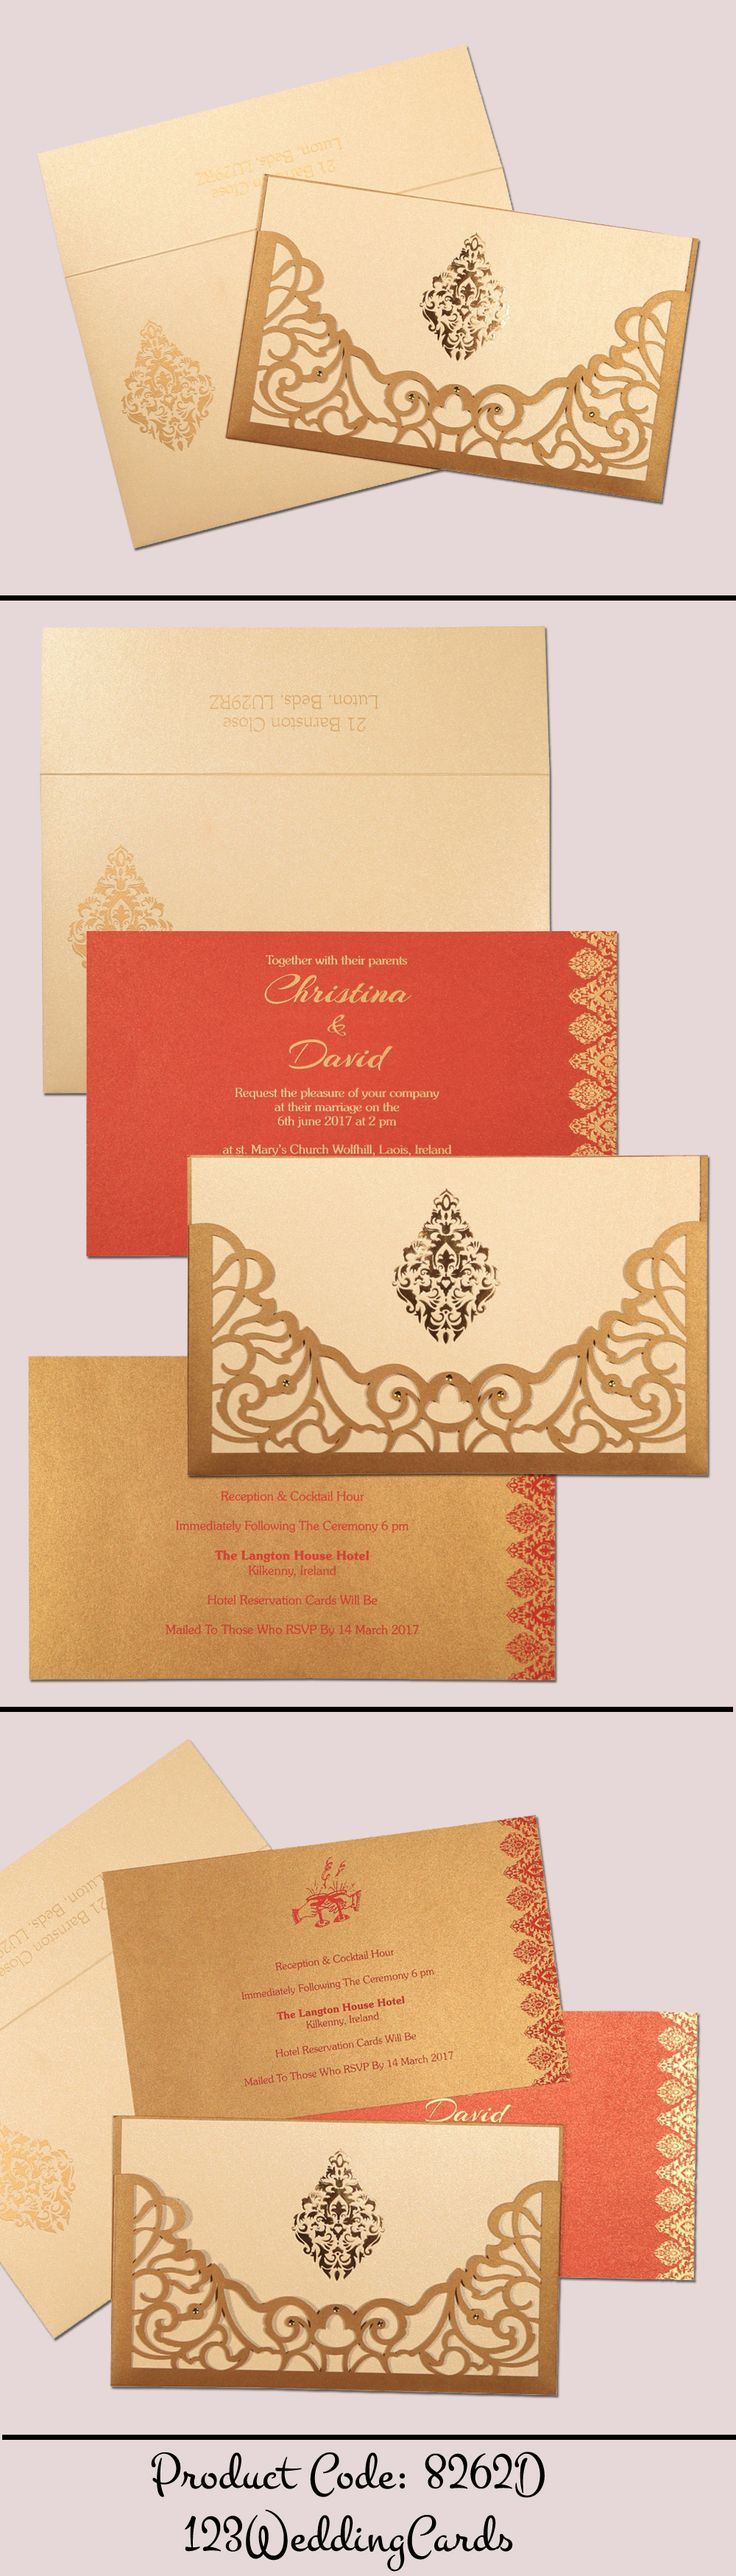 how to write muslim wedding invitation card%0A Shimmery damask themed  laser cut wedding card   i    d